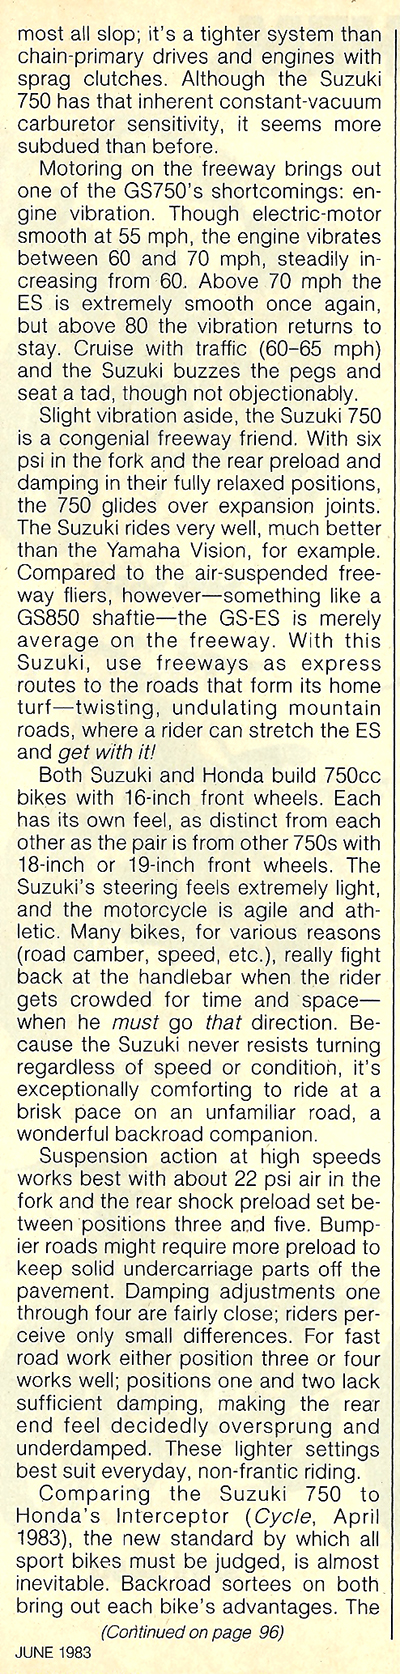 1983 Suzuki GS750ES road test 8.jpg